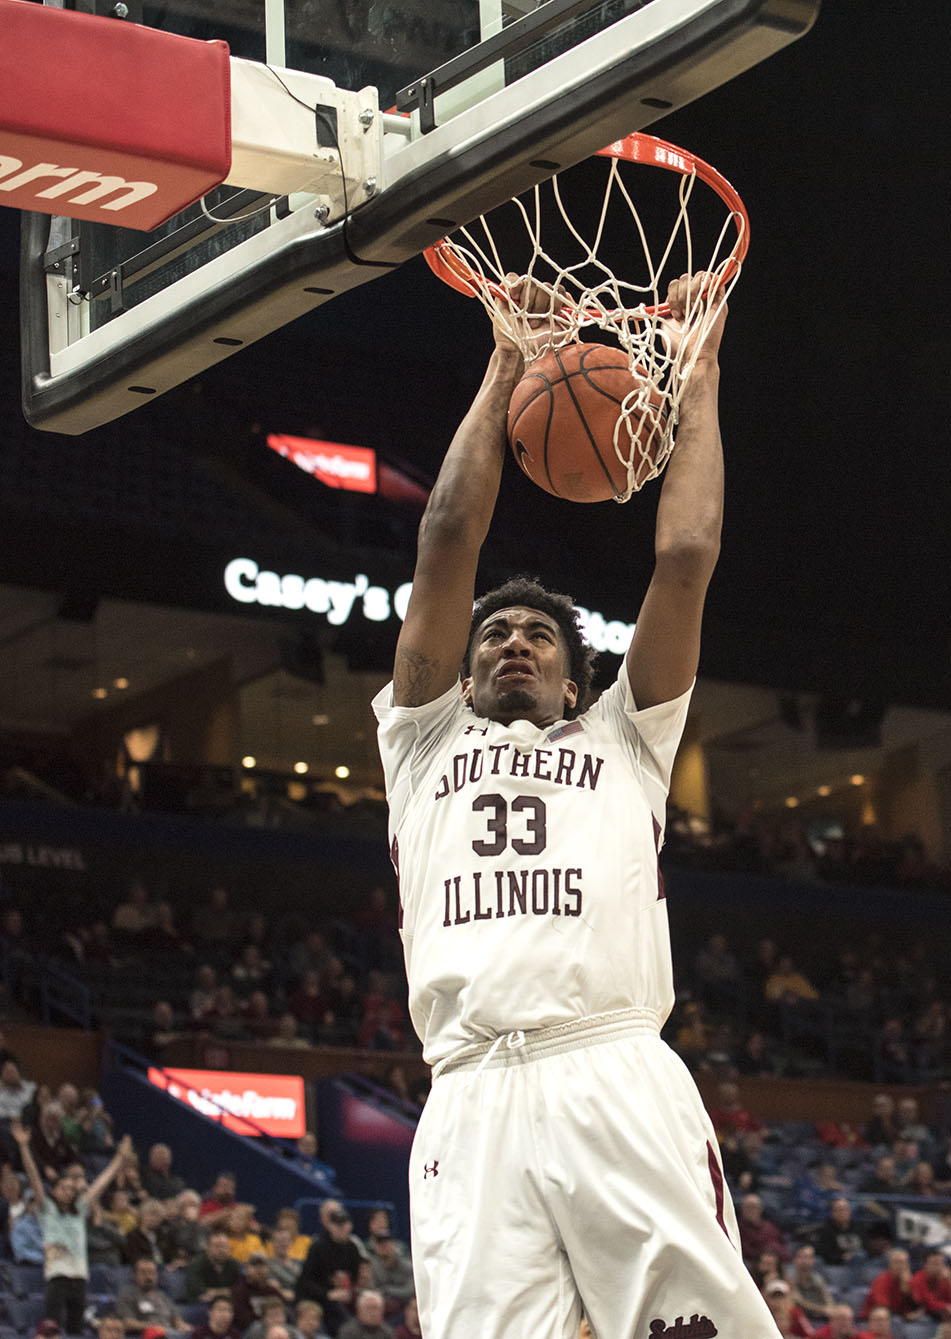 Junior+center+Kavion+Pippen+dunks+the+ball+Saturday%2C+March.+3%2C+2018%2C+during+the+Salukis%E2%80%99+76-68+loss+against+the+Illinois+State+Redbirds+at+the+Missouri+Valley+Conference+%22Arch+Madness%22+tournament+in+St.+Louis.+%28Athena+Chrysanthou+%7C+%40Chrysant1Athena%29